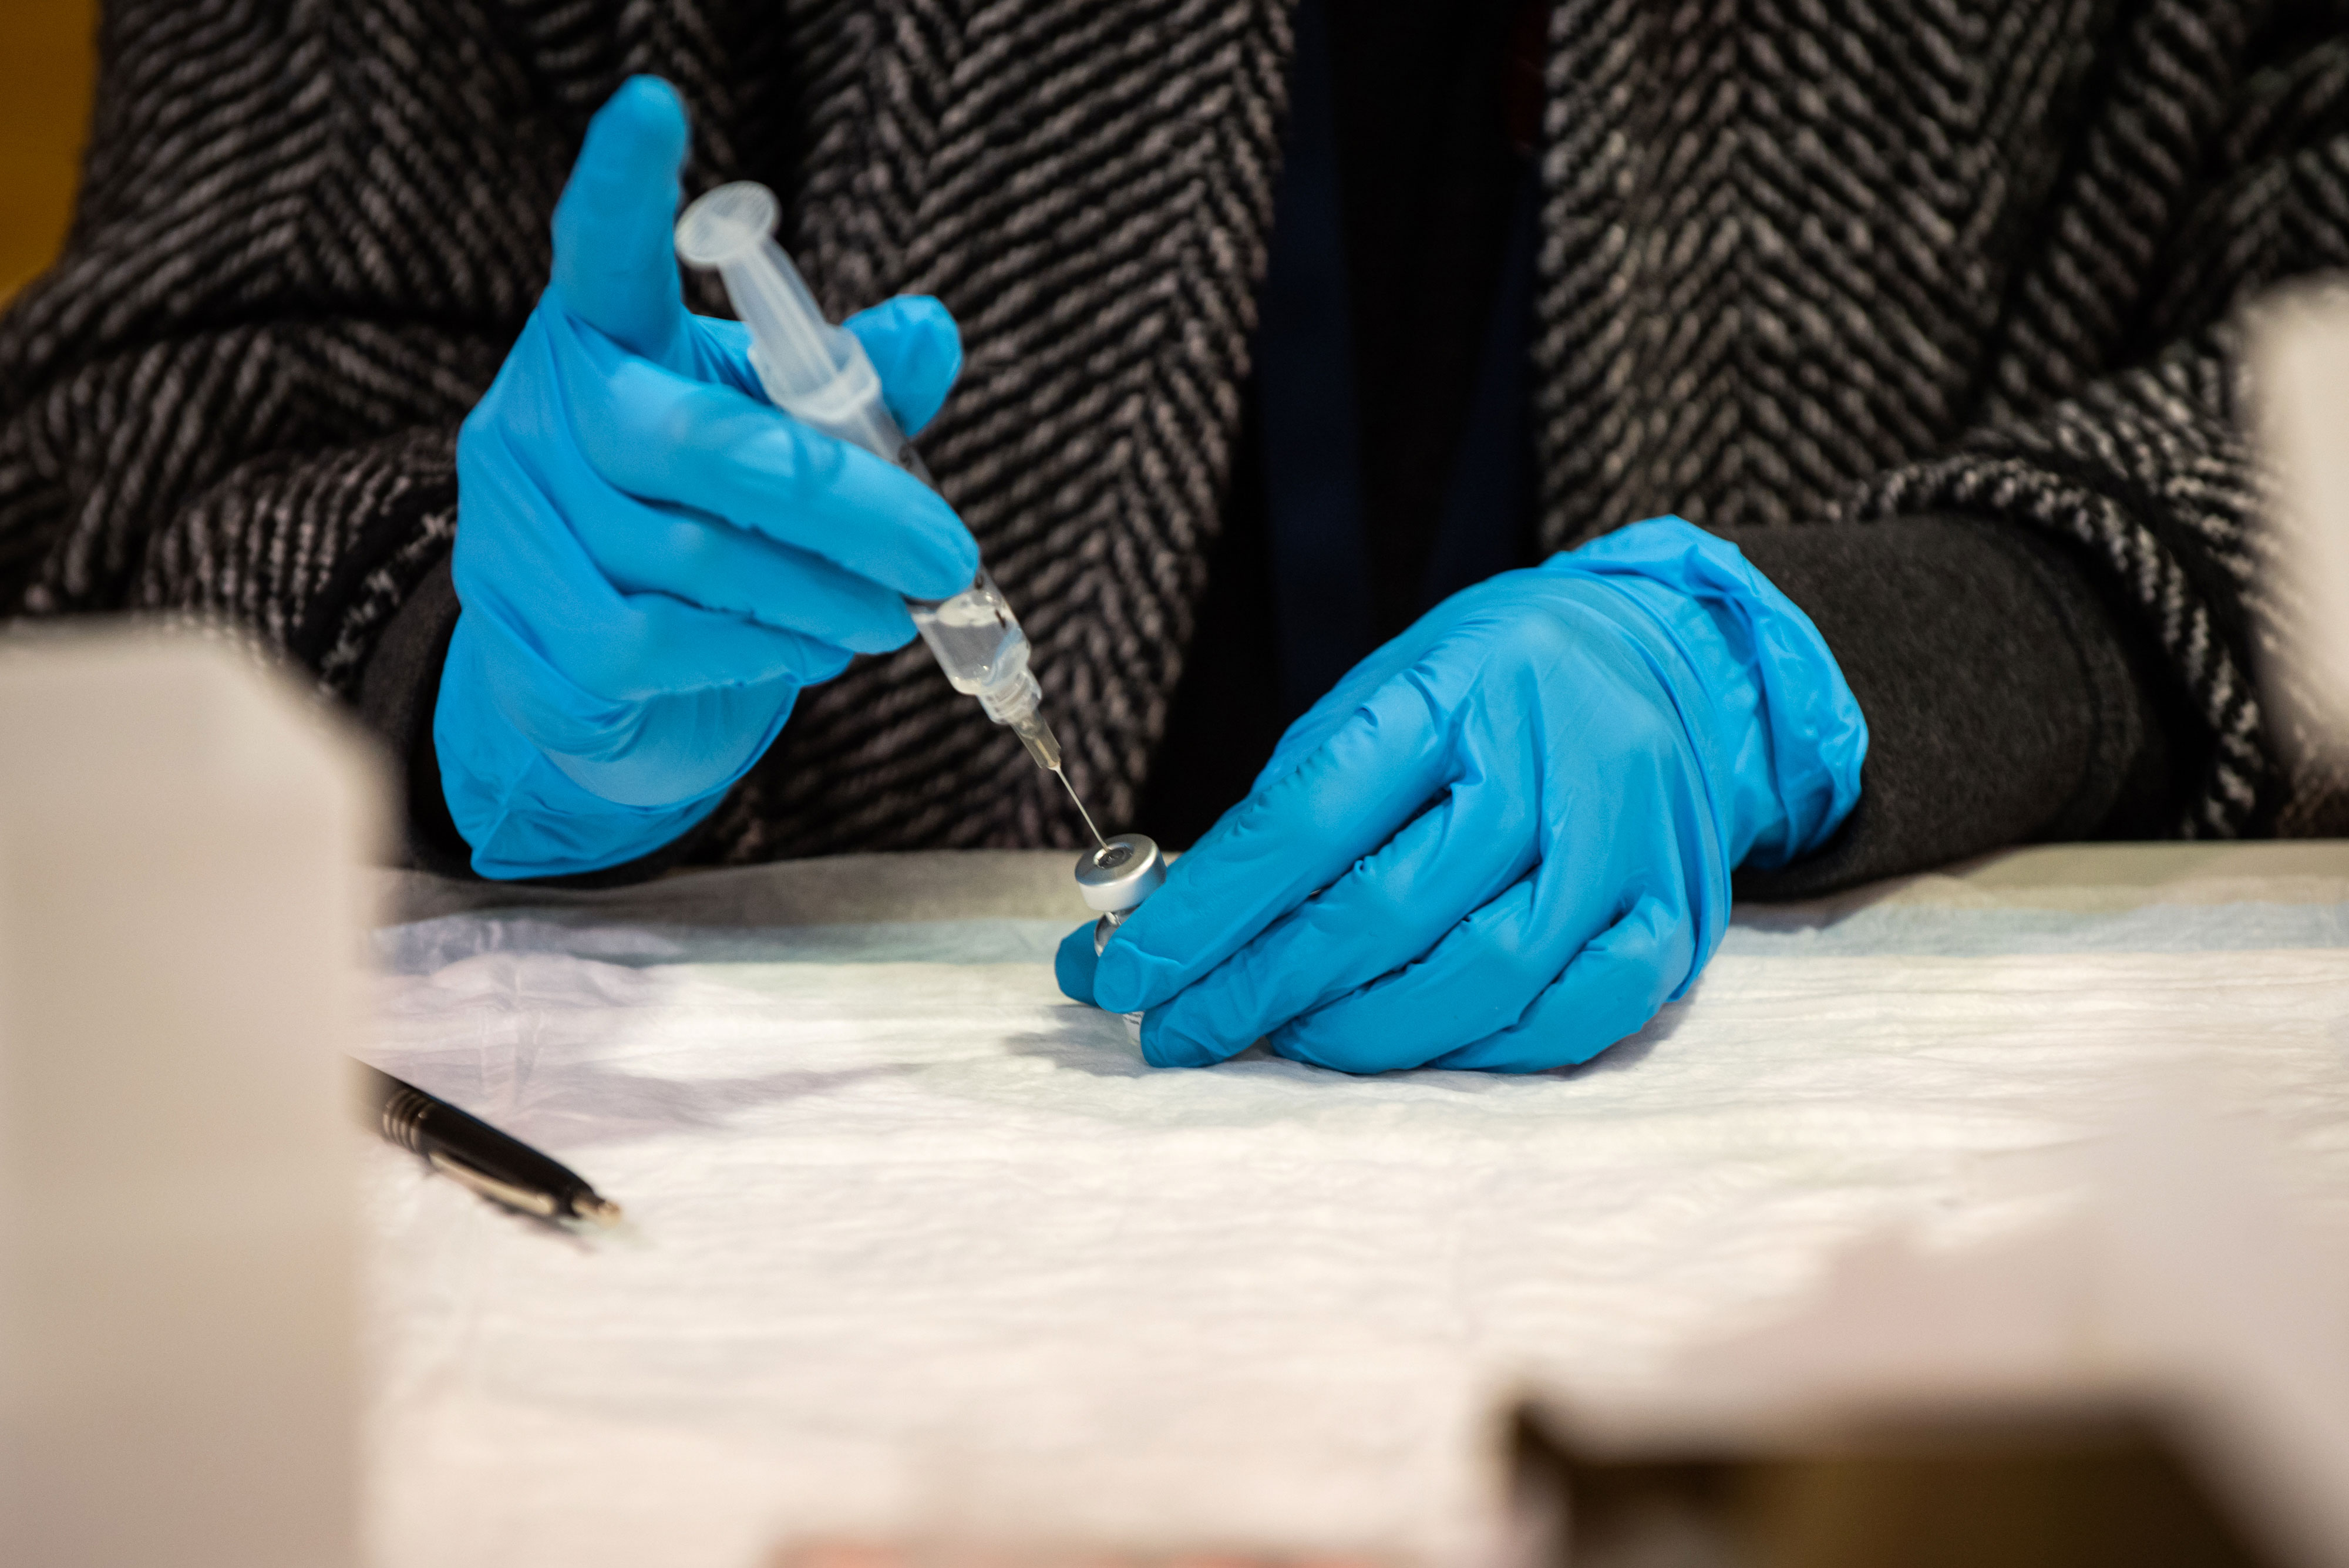 A health care worker prepares a syringe with the Pfizer/BioNTech Covid-19 vaccine in Gallup, New Mexico, on March 23.